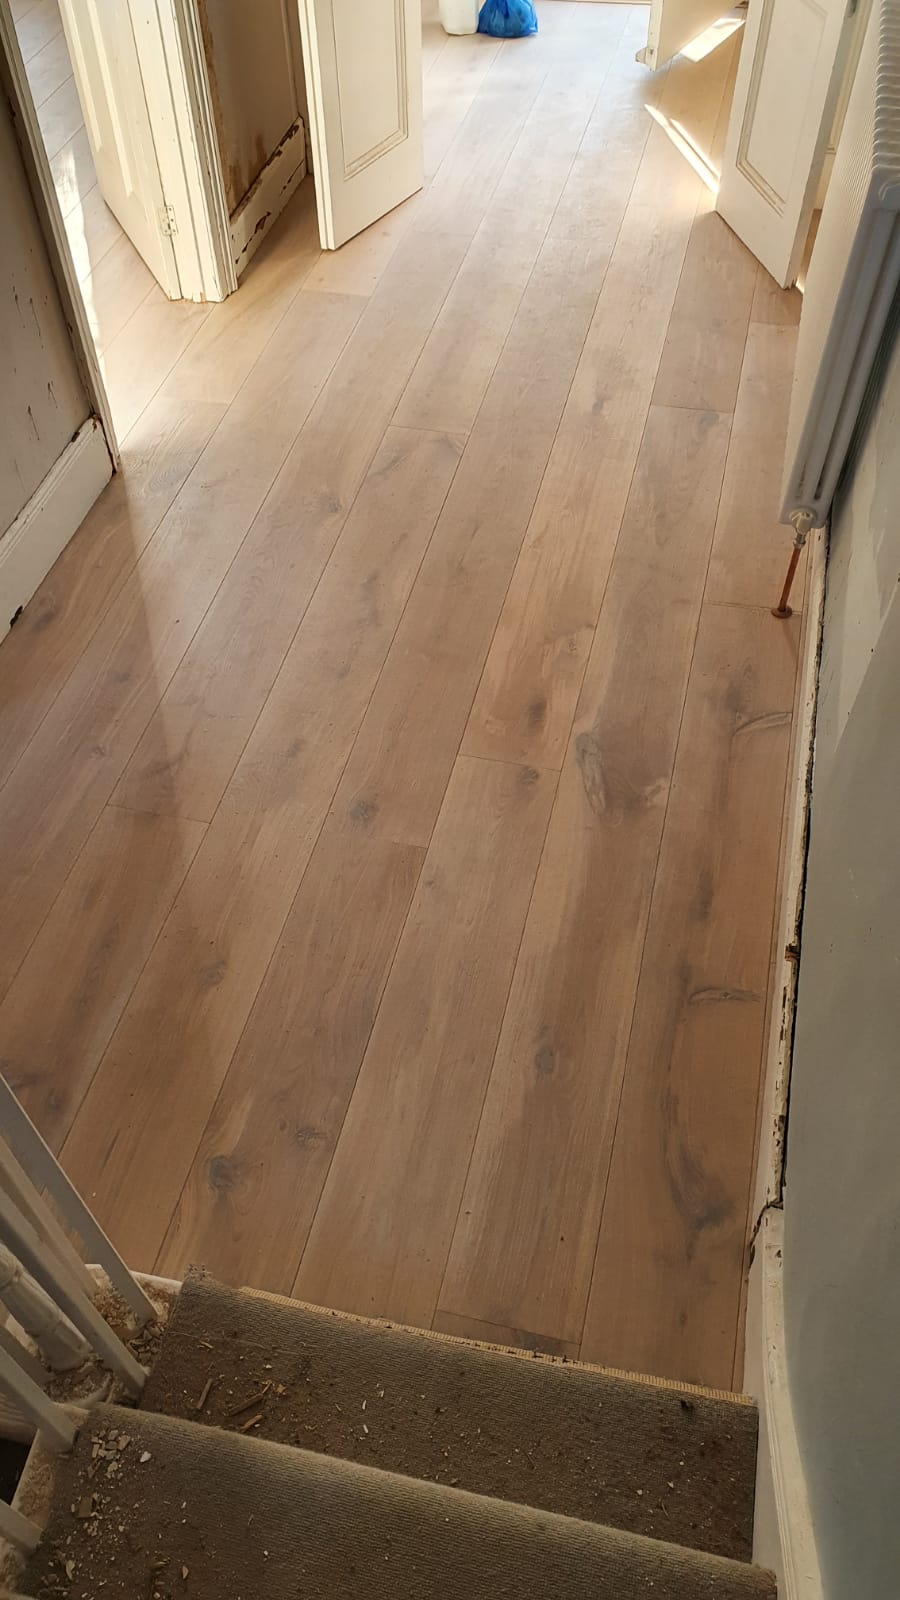 Staki Brushed & White Oil Wood Flooring 3